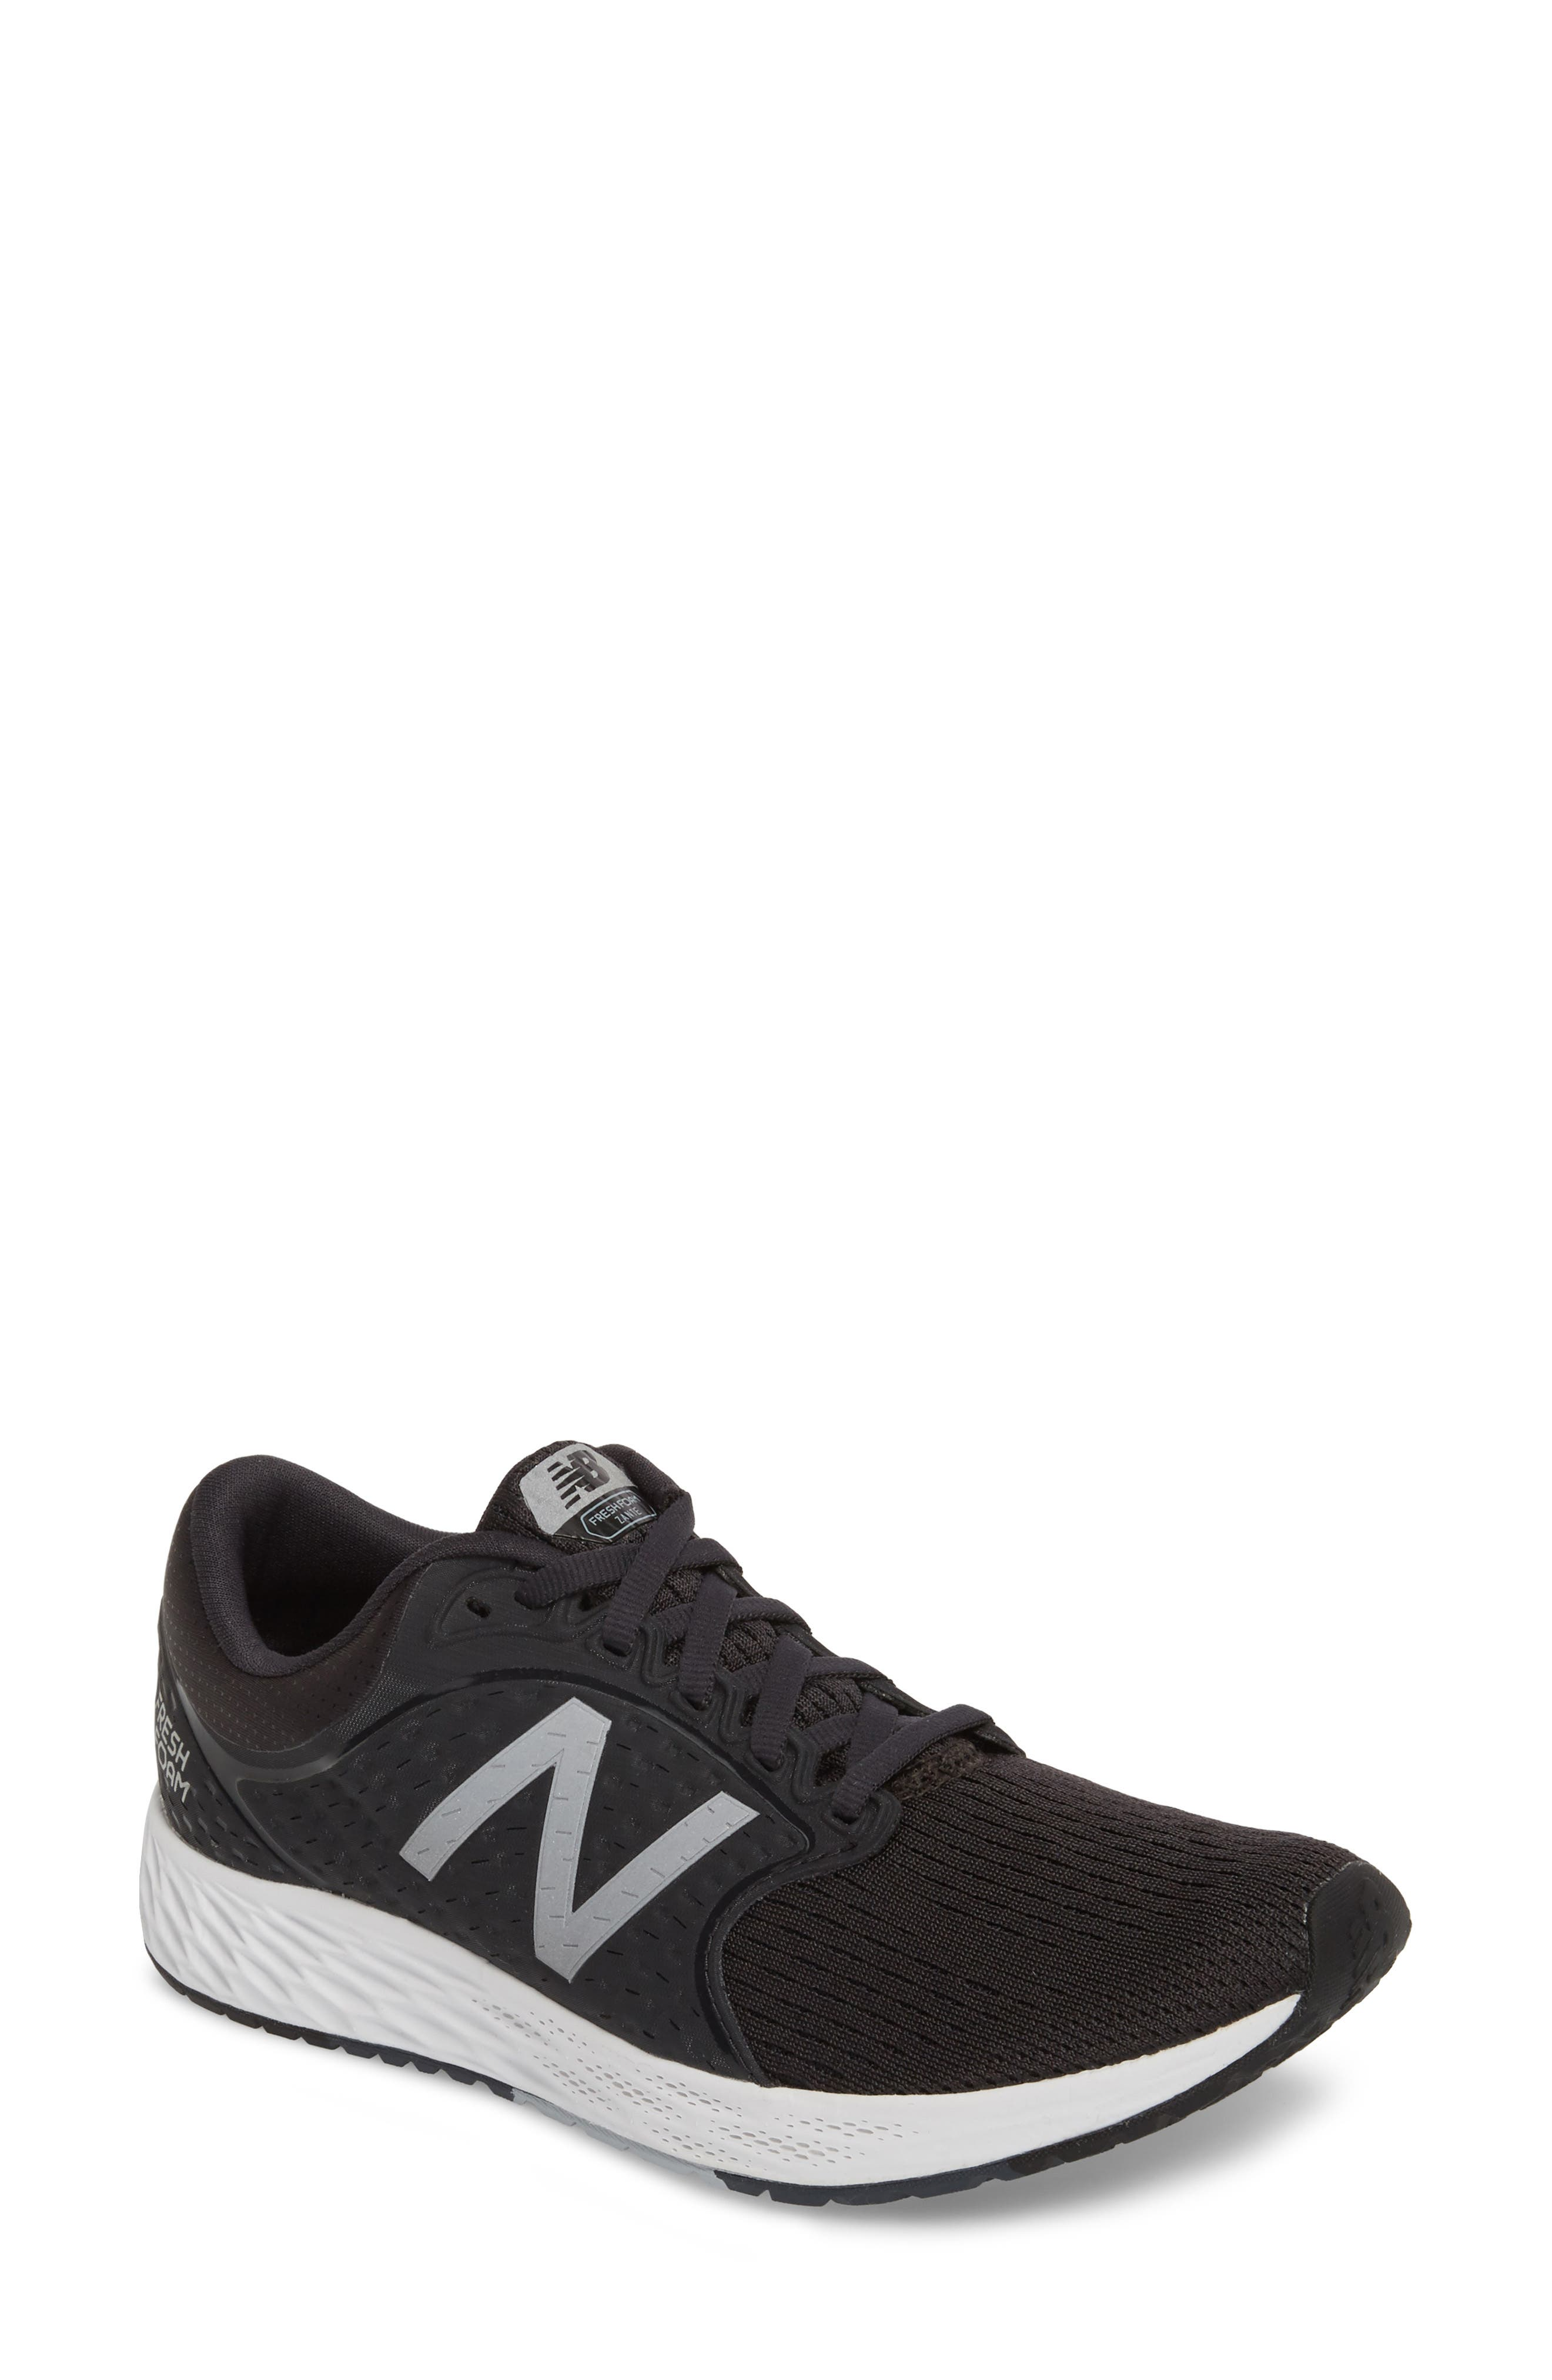 Alternate Image 1 Selected - New Balance Fresh Foam Zante v4 Running Shoe (Women)